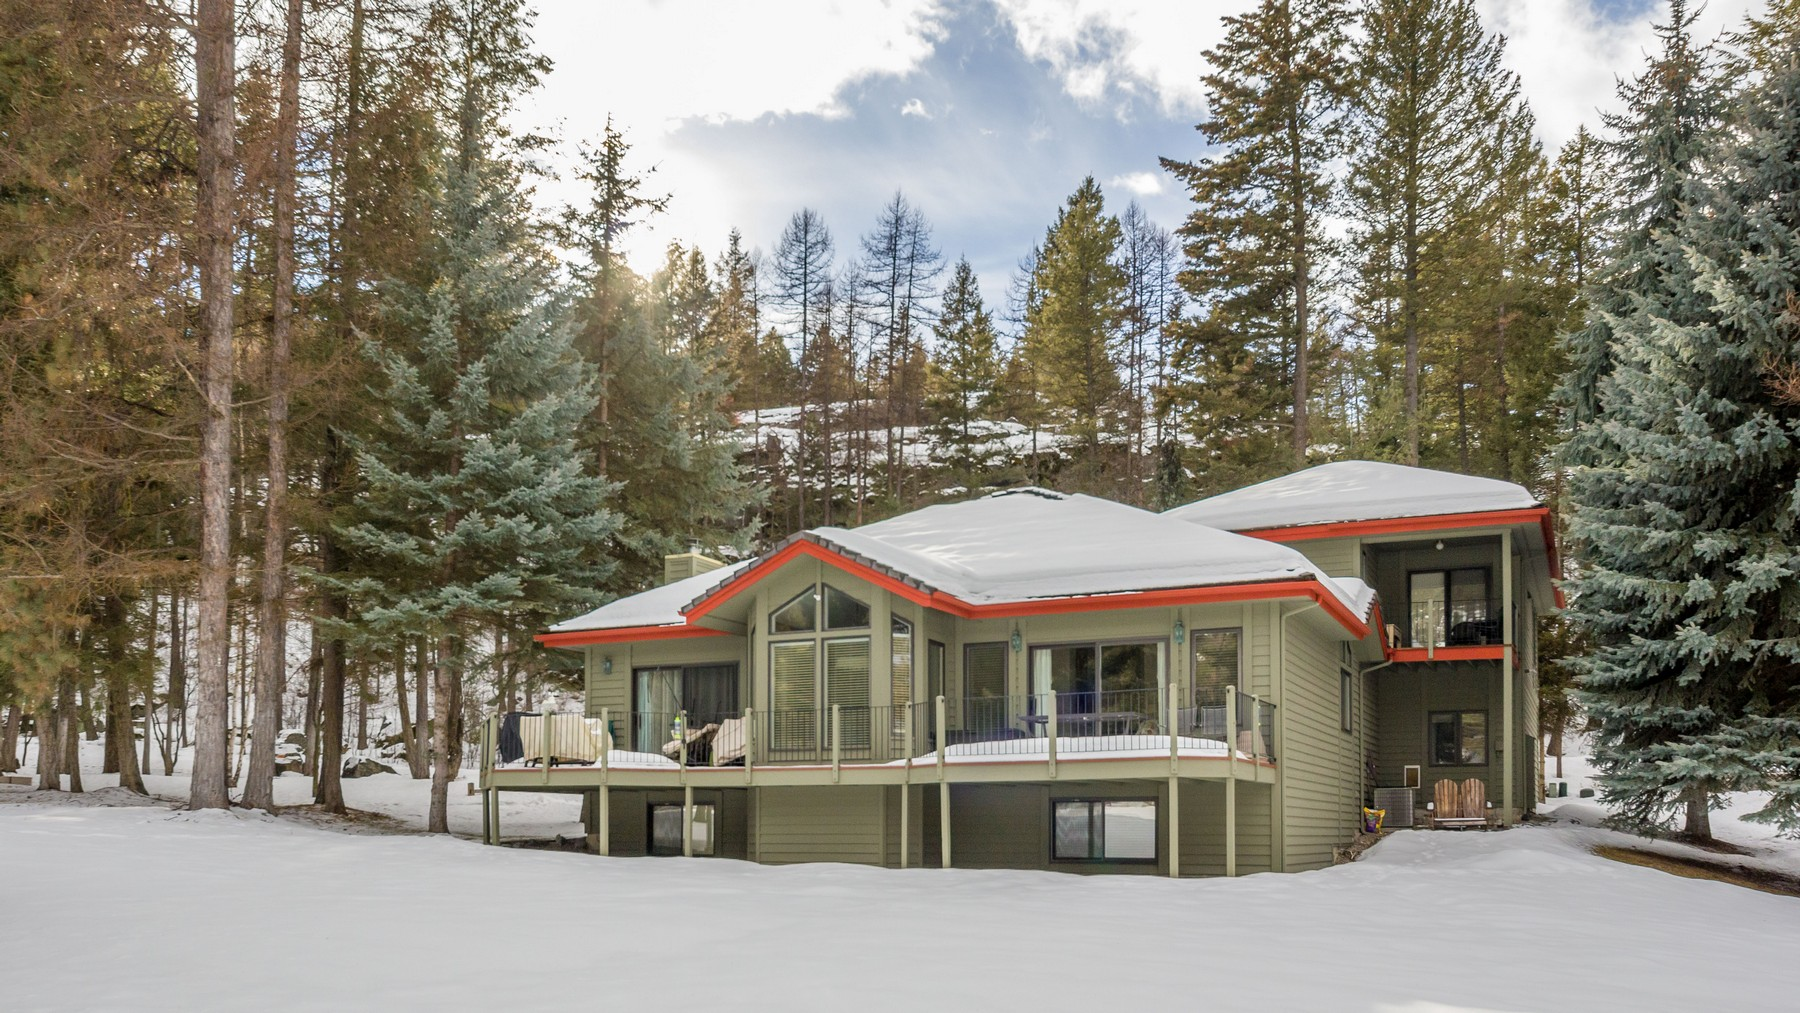 Single Family Home for Sale at 163 Golf Terrace , Bigfork, MT 59911 163 Golf Terr Bigfork, Montana 59911 United States